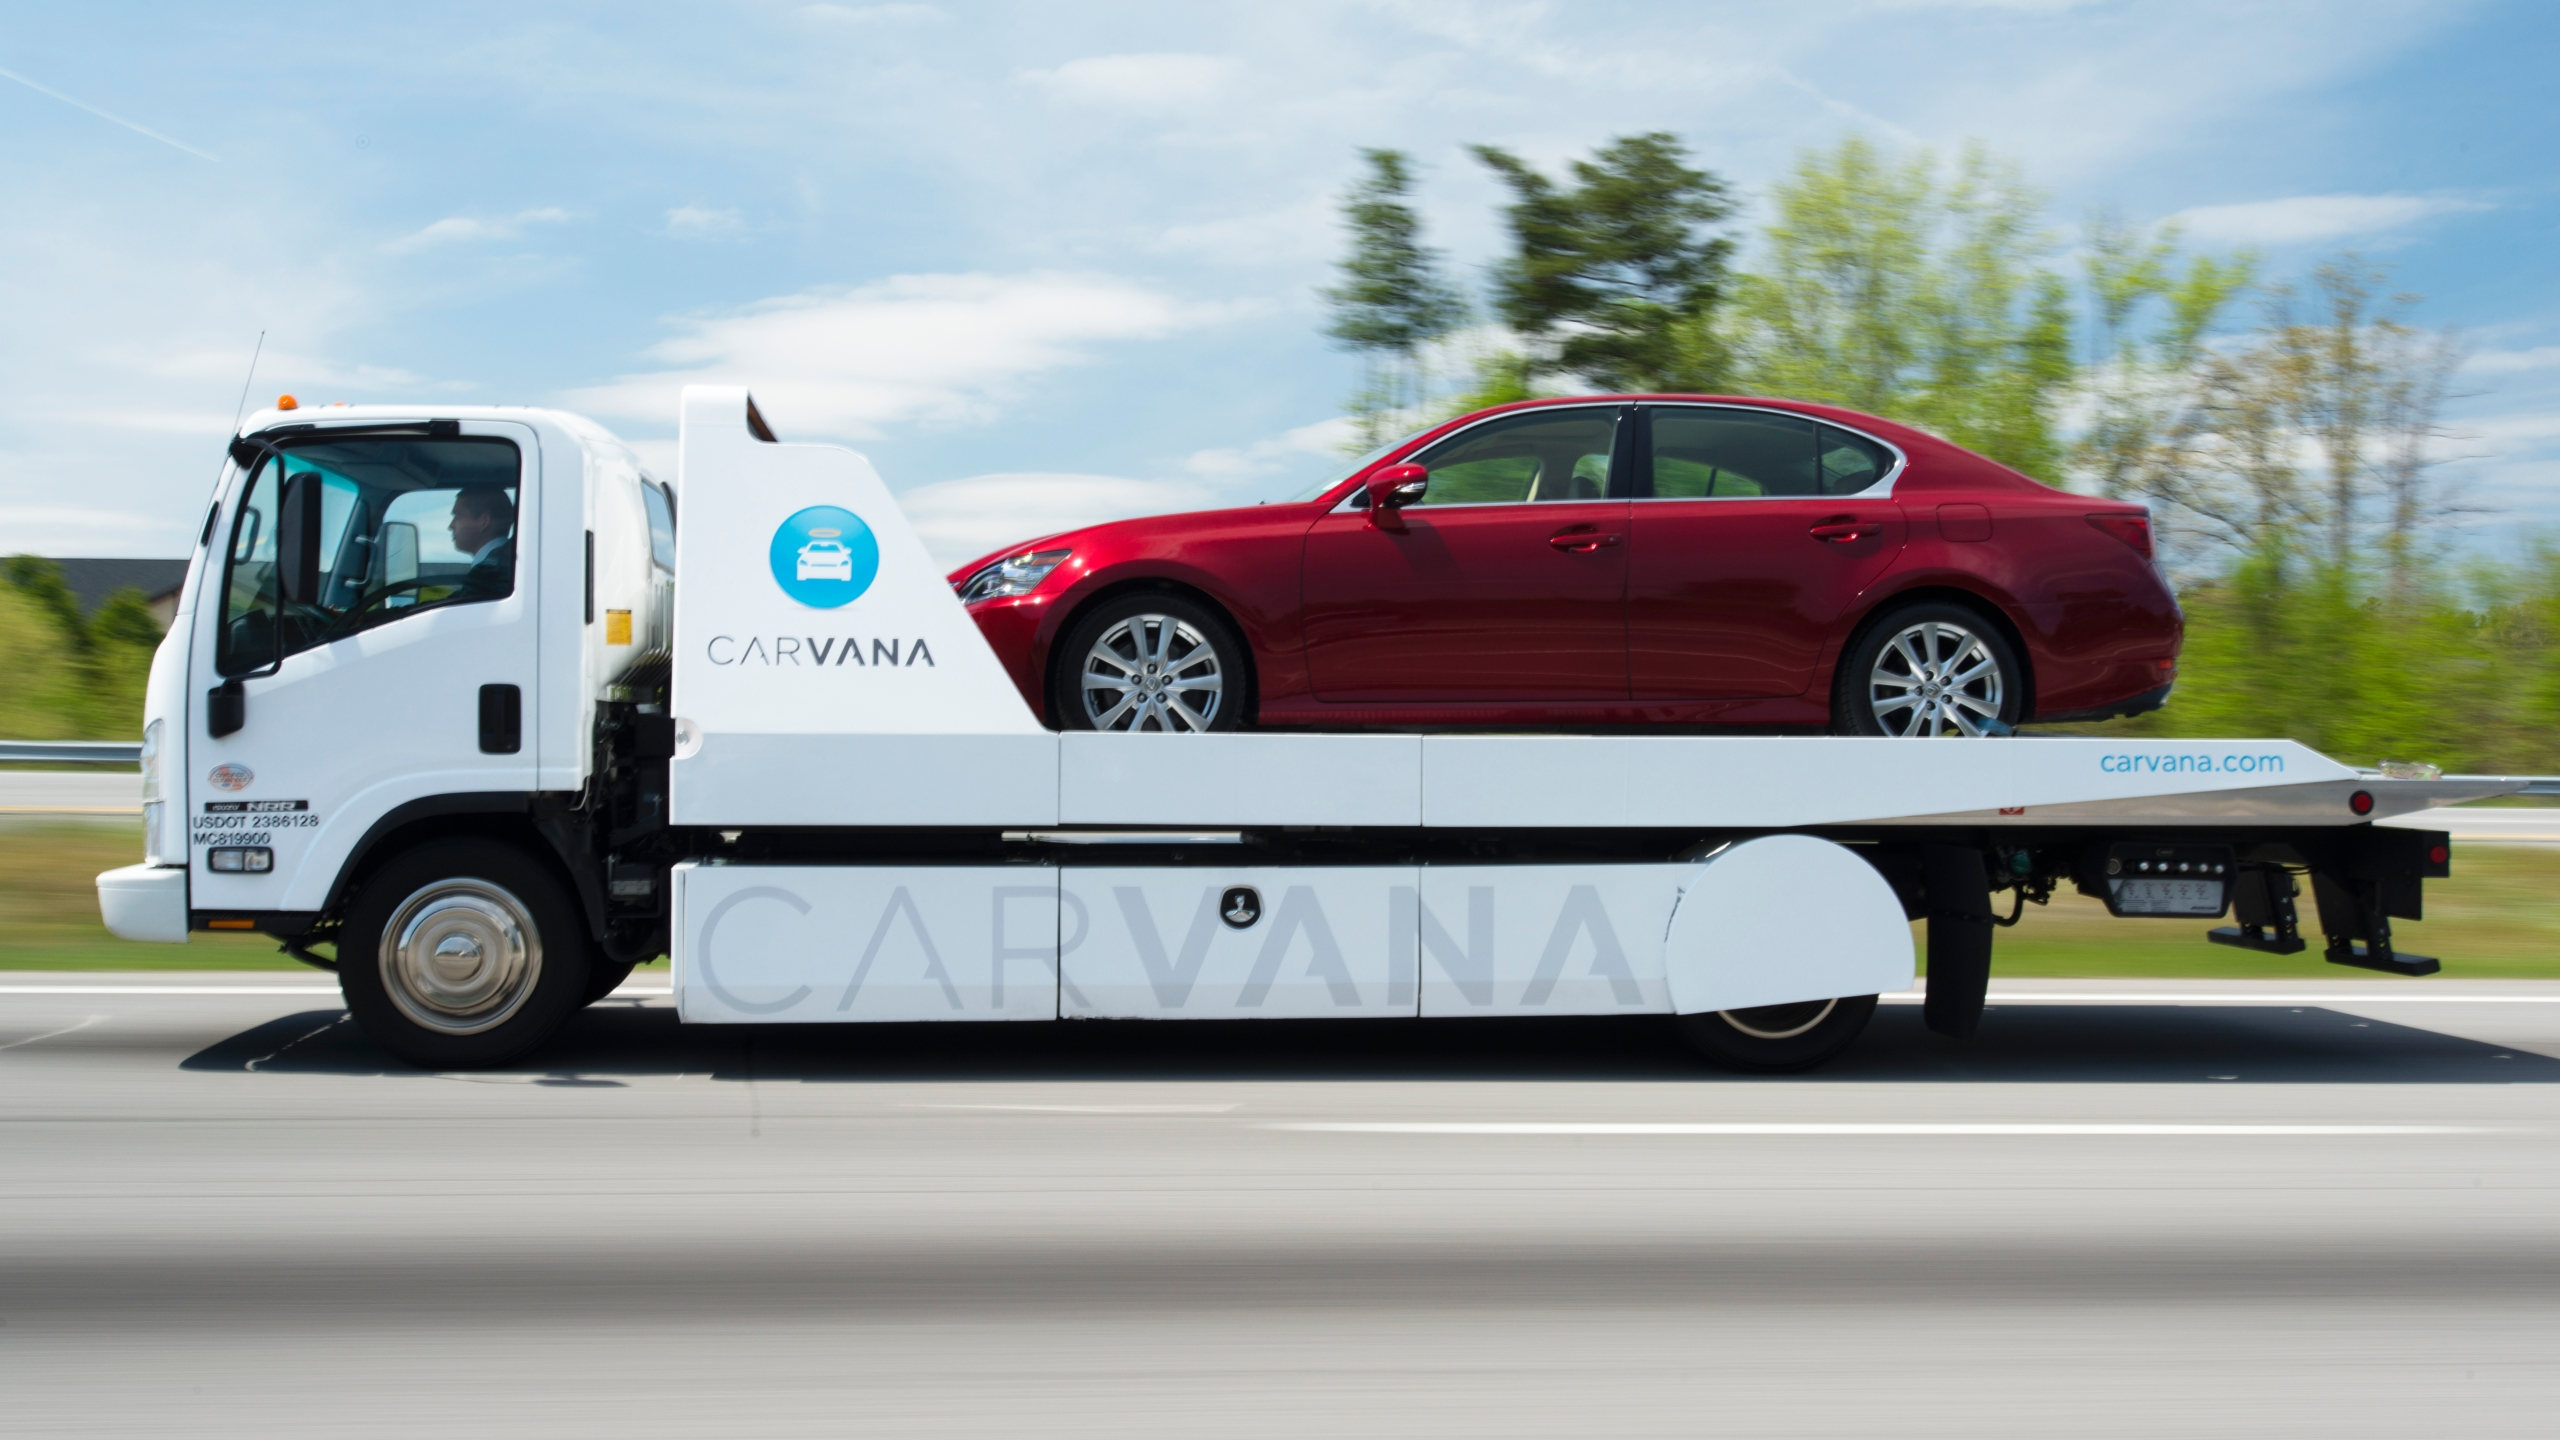 Carvana Launches As-Soon-As-Next Day Delivery in Alexandria